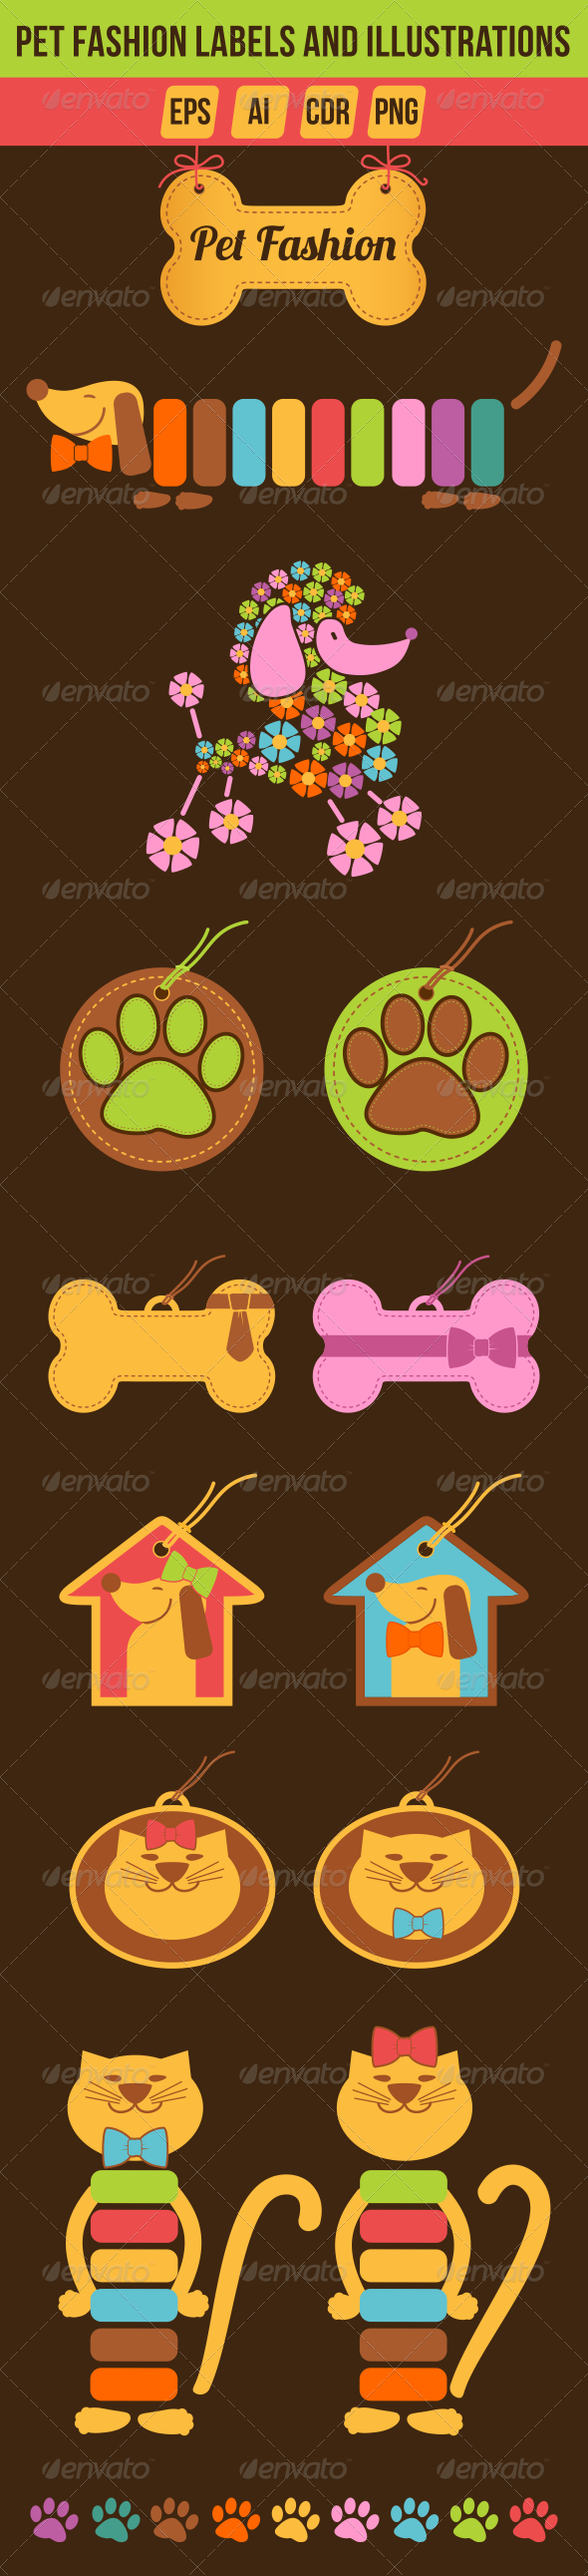 GraphicRiver Pet Fashion Labels and Illustrations 7793325